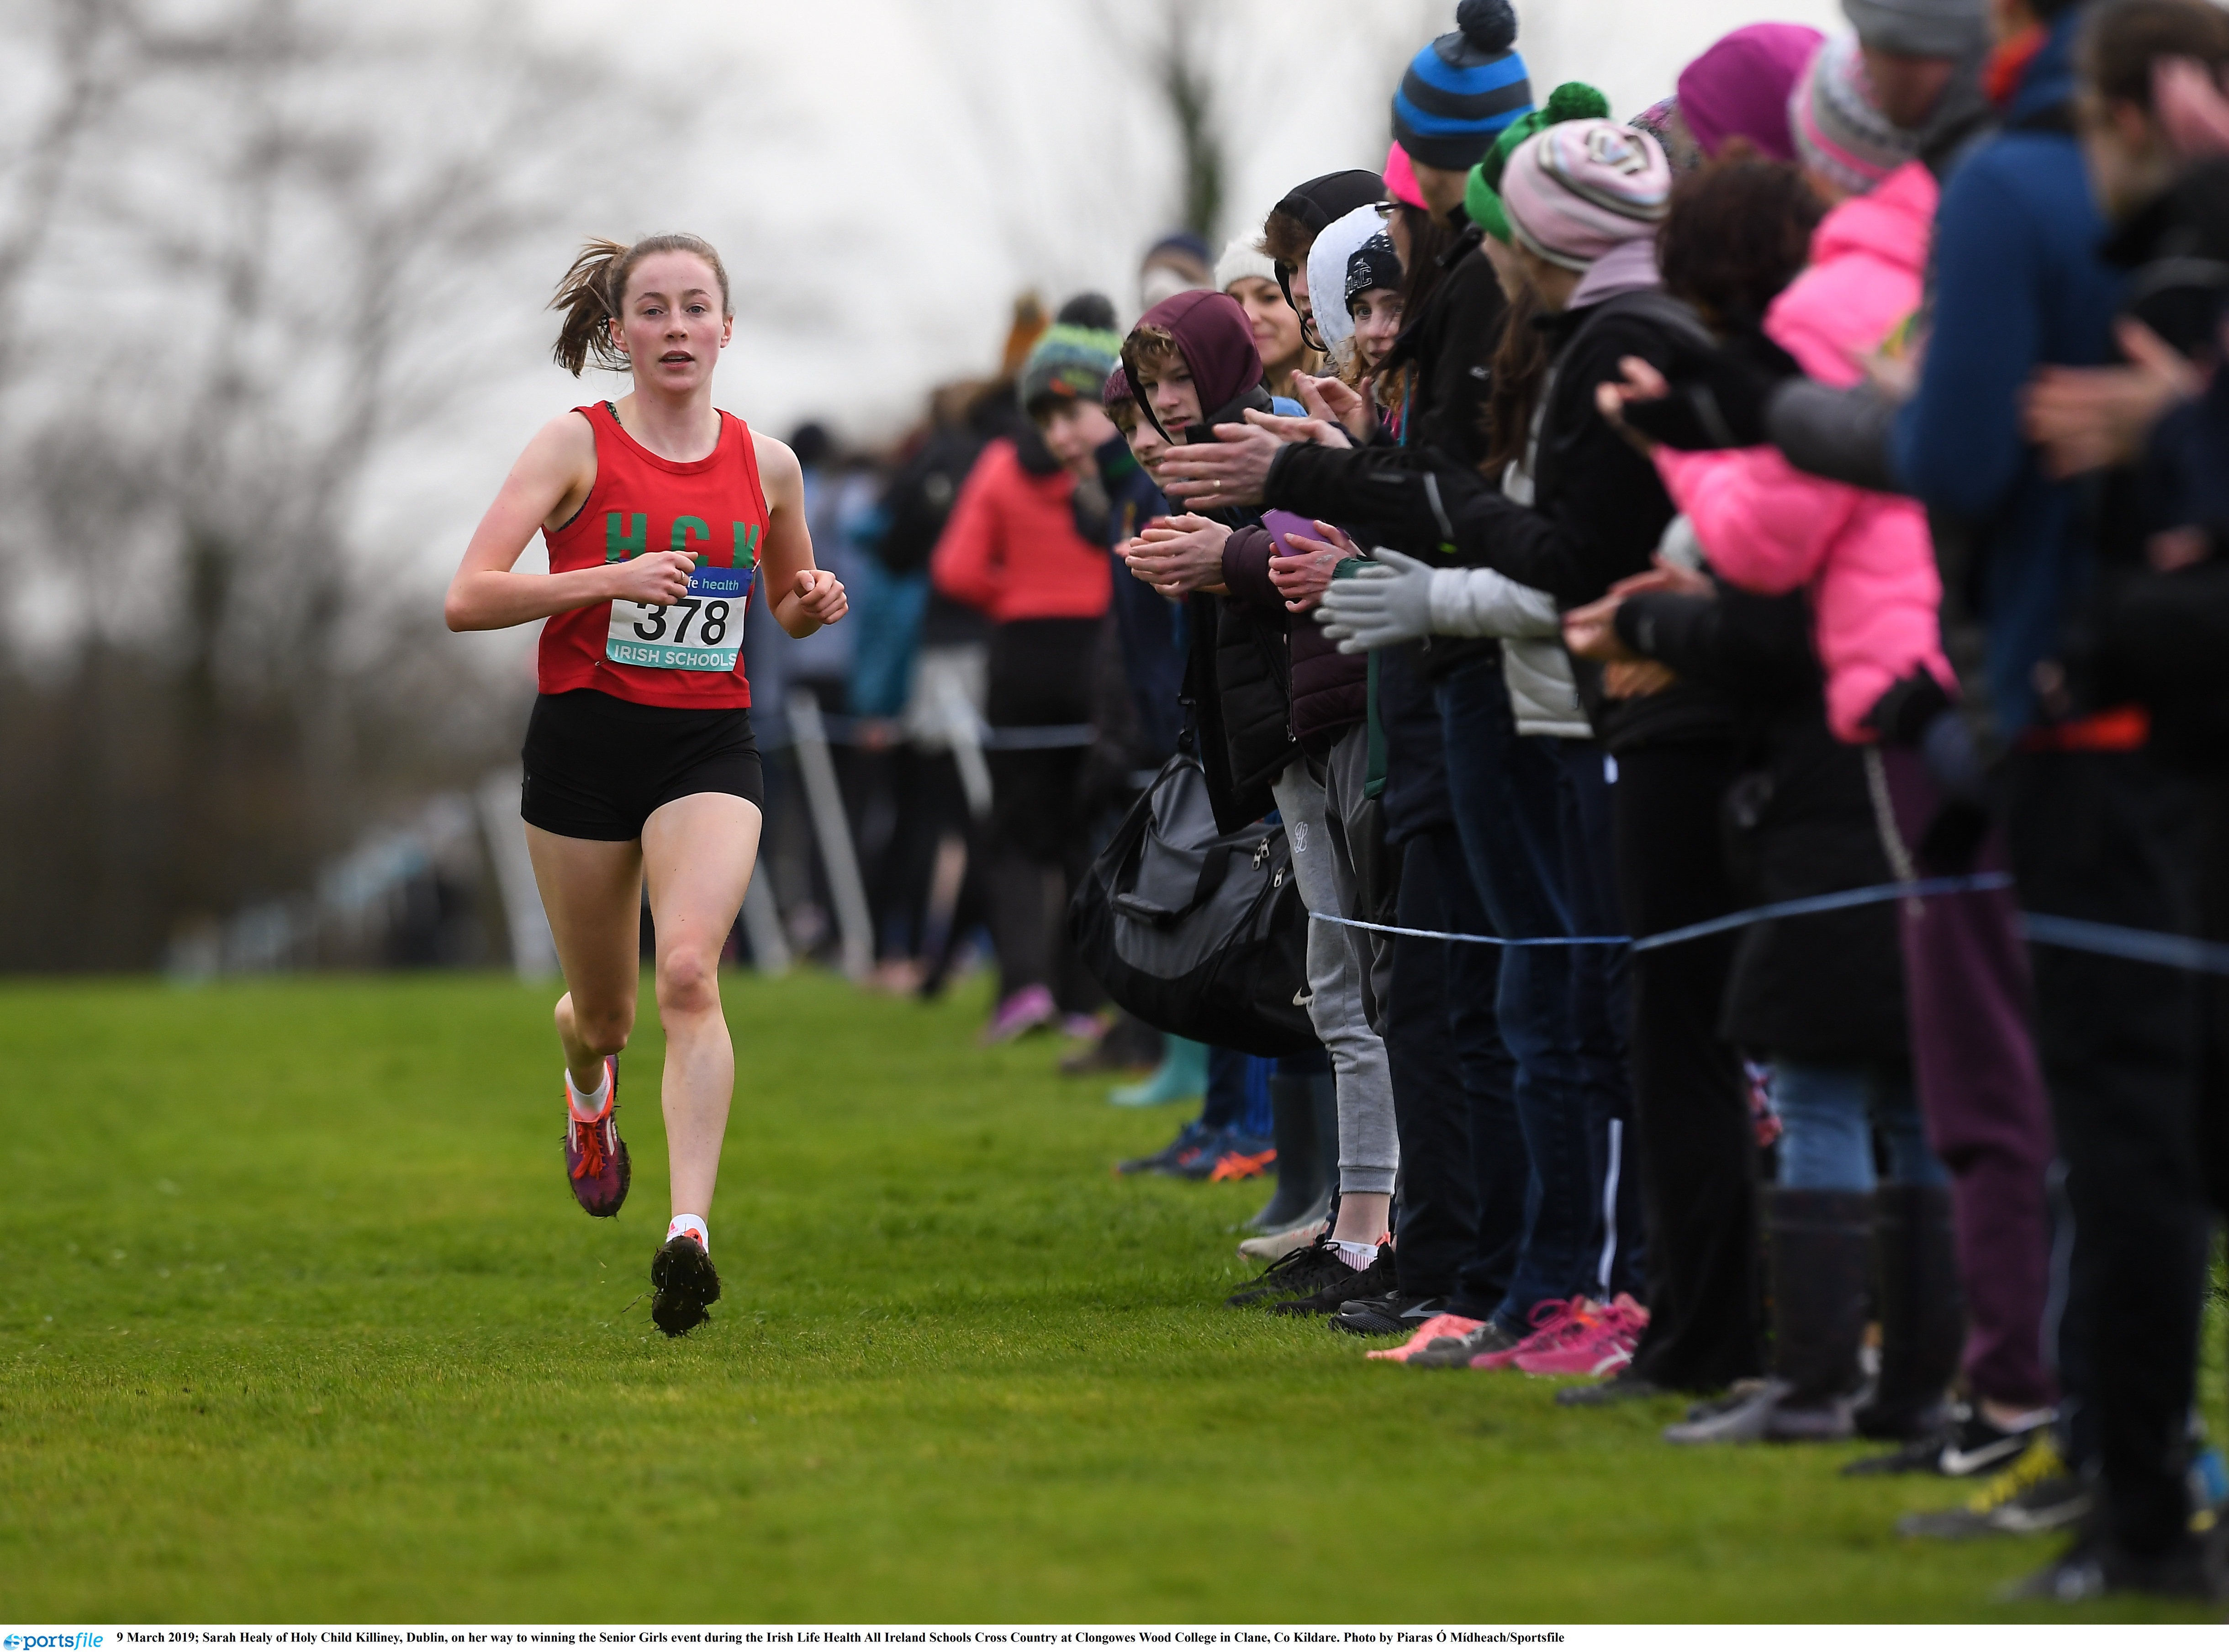 Healy and Gidey repeat in style in Clongowes